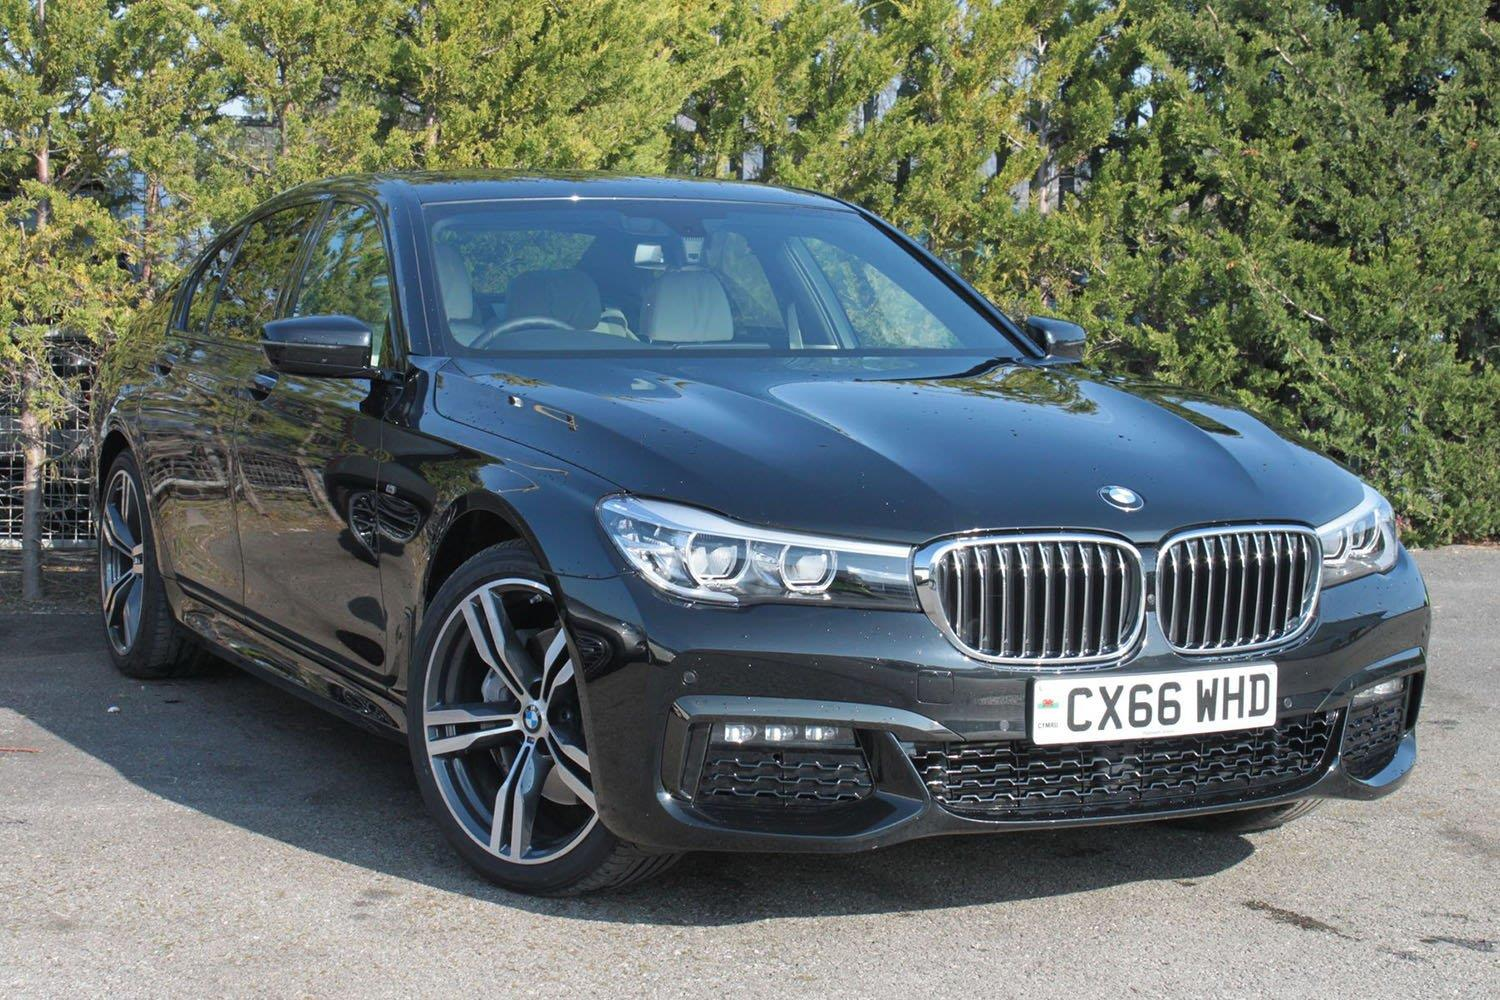 BMW 7 Series Saloon CX66WHD - Image 6